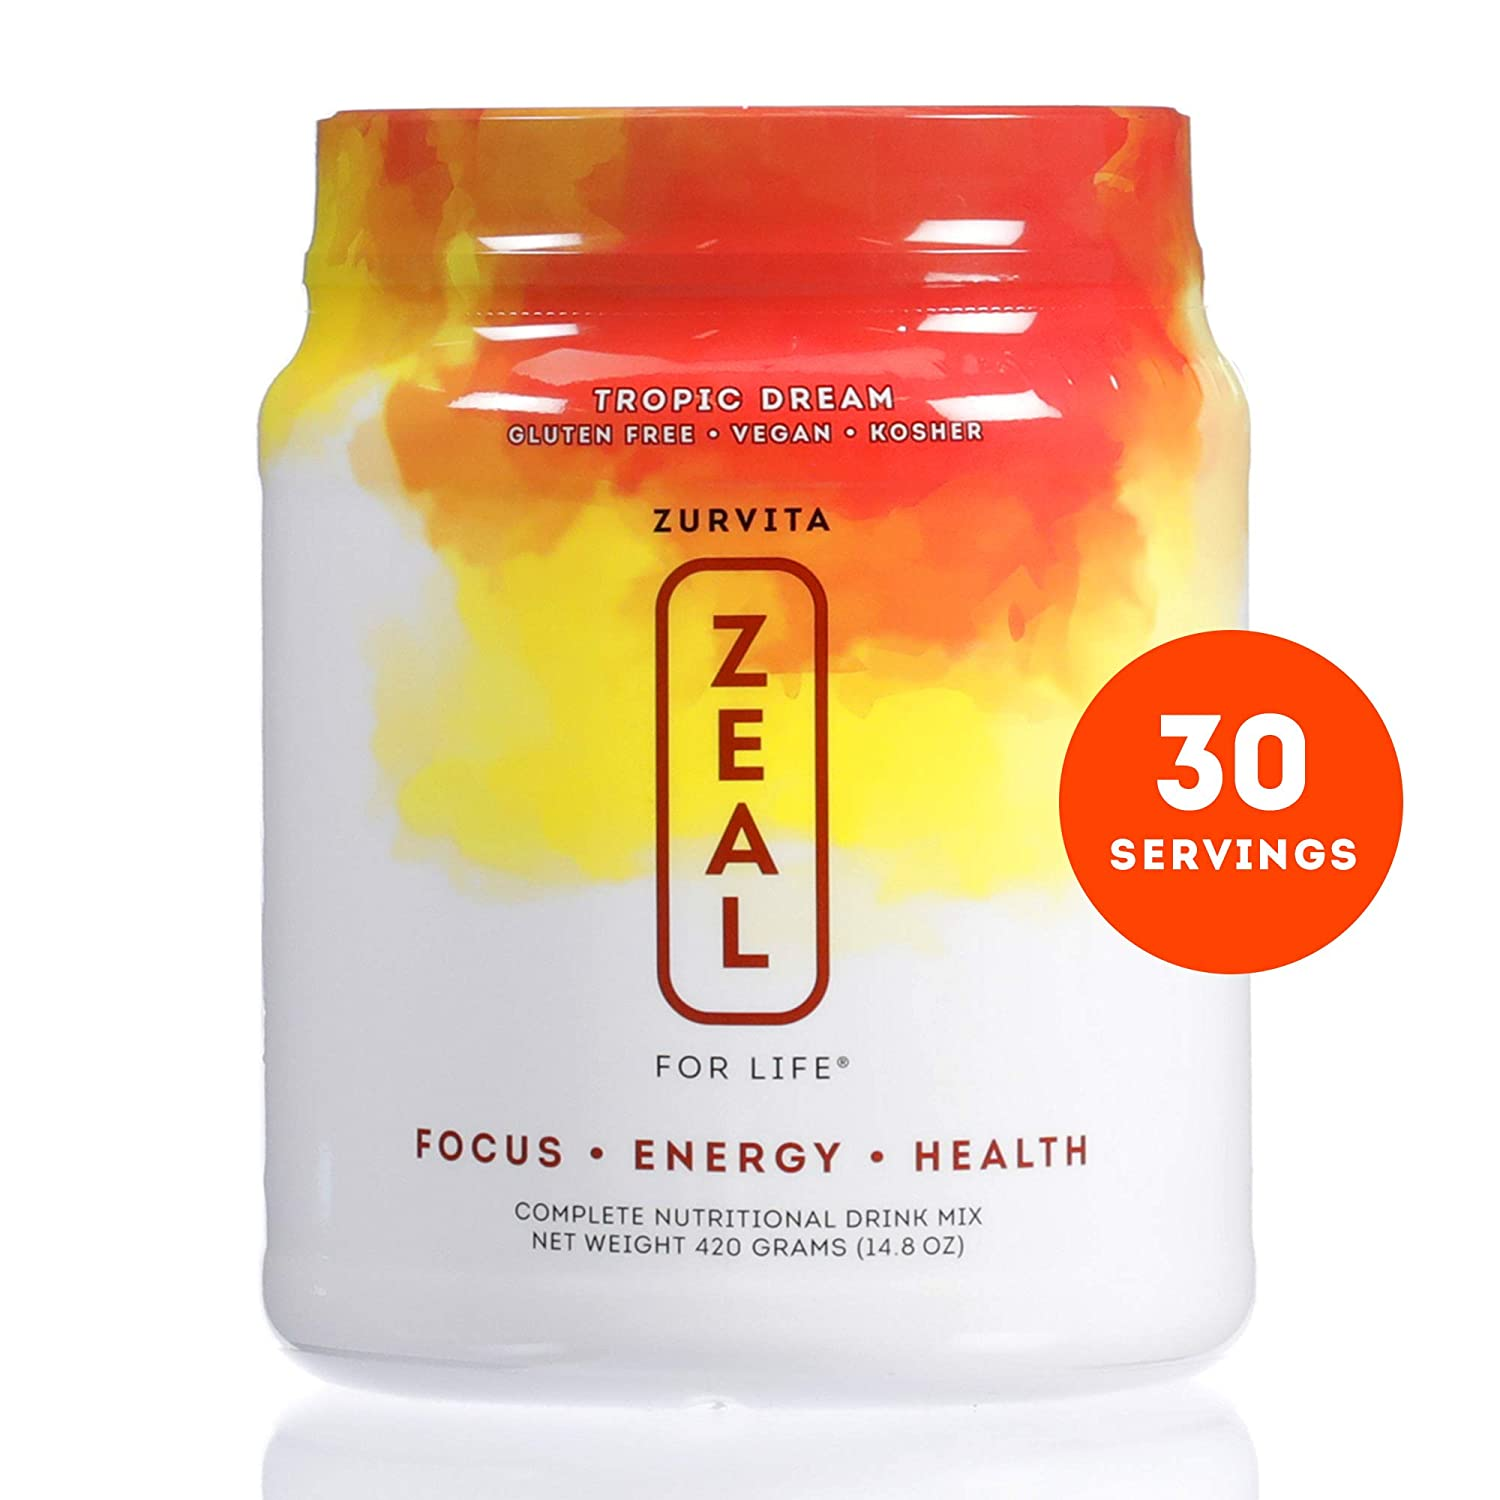 Zurvita Zeal for Life 30 Day Wellness Canister, Tropic Dream, 420 Grams Nutritious Drink with Vitamin A, C, D, E, B6, and B12